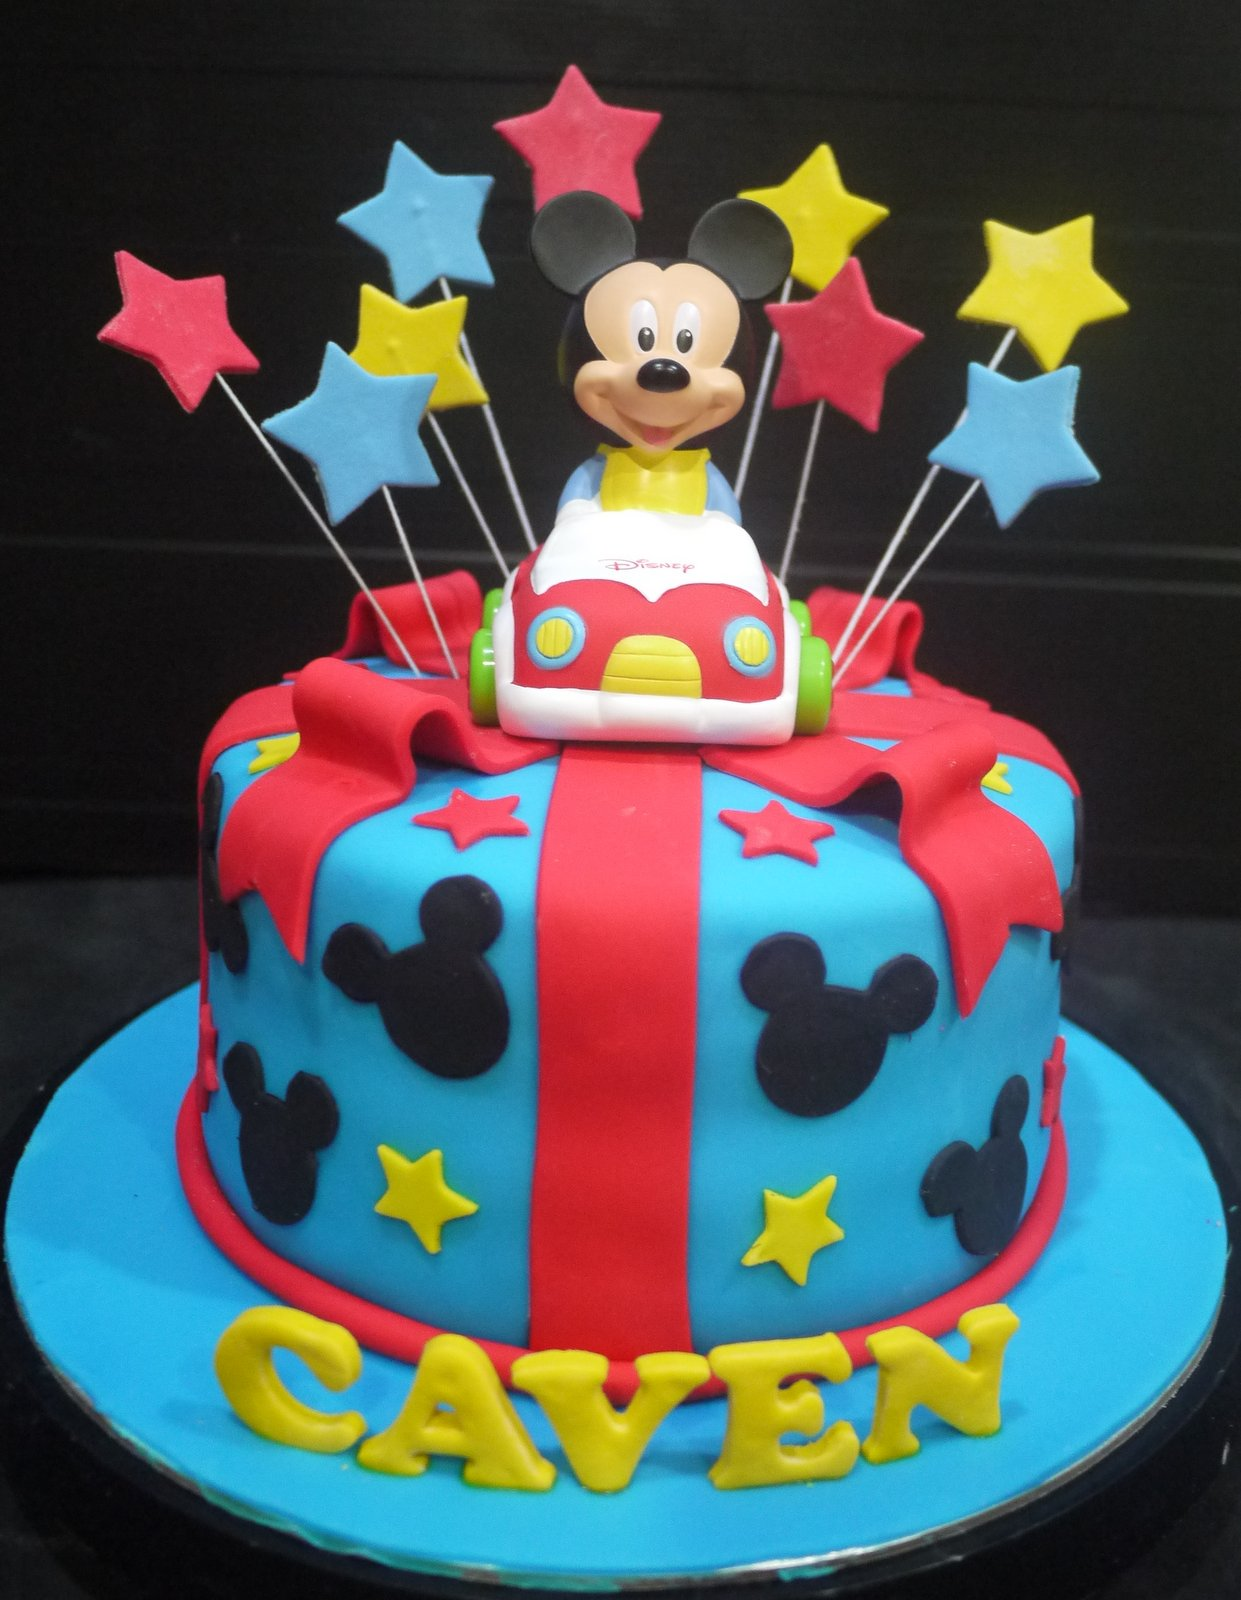 cupcake divinity mickey mouse theme cake. Black Bedroom Furniture Sets. Home Design Ideas